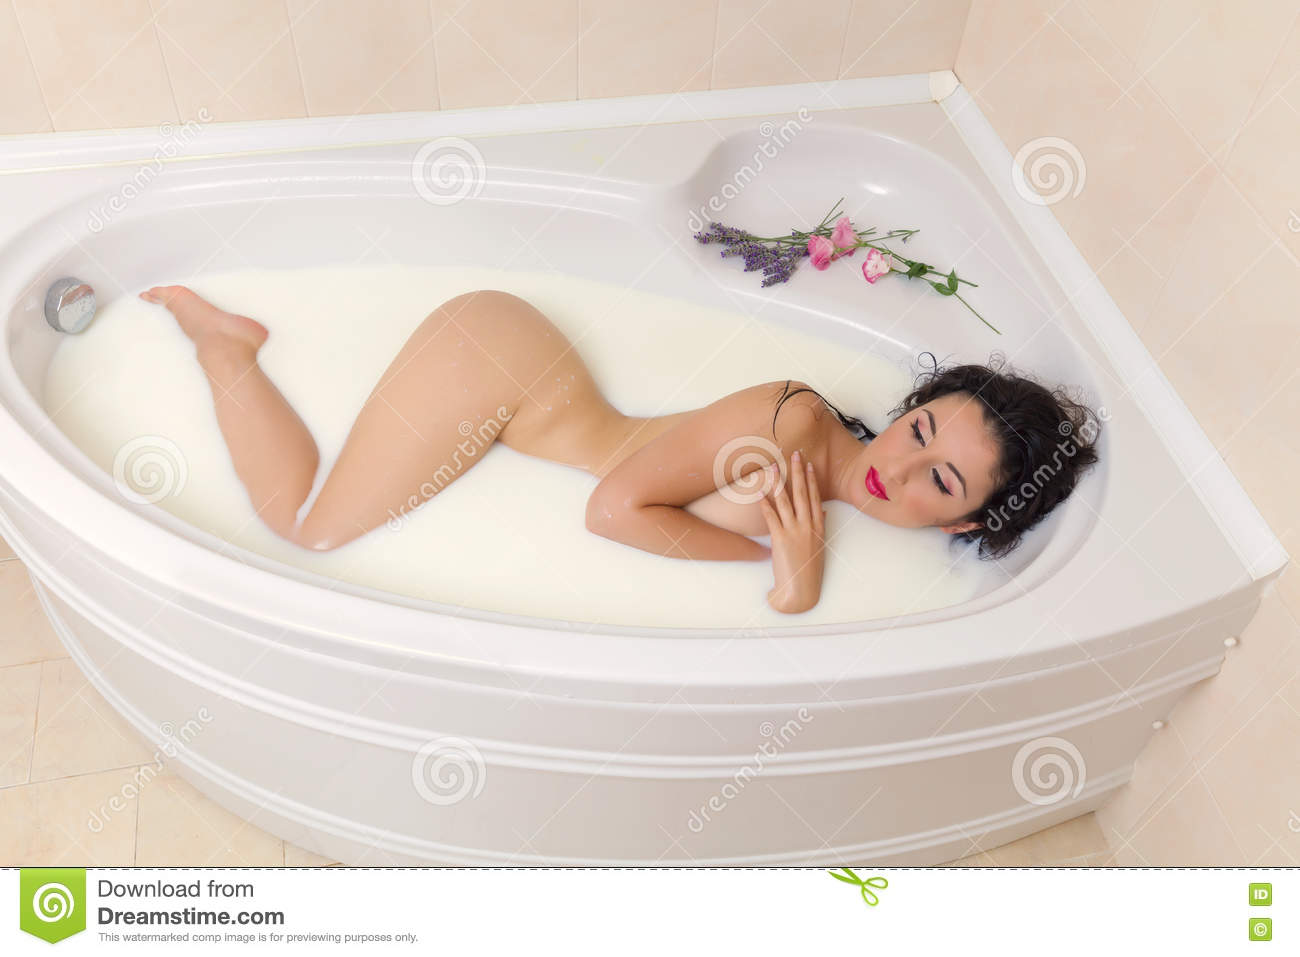 Criticism woman naked young bathtub are not